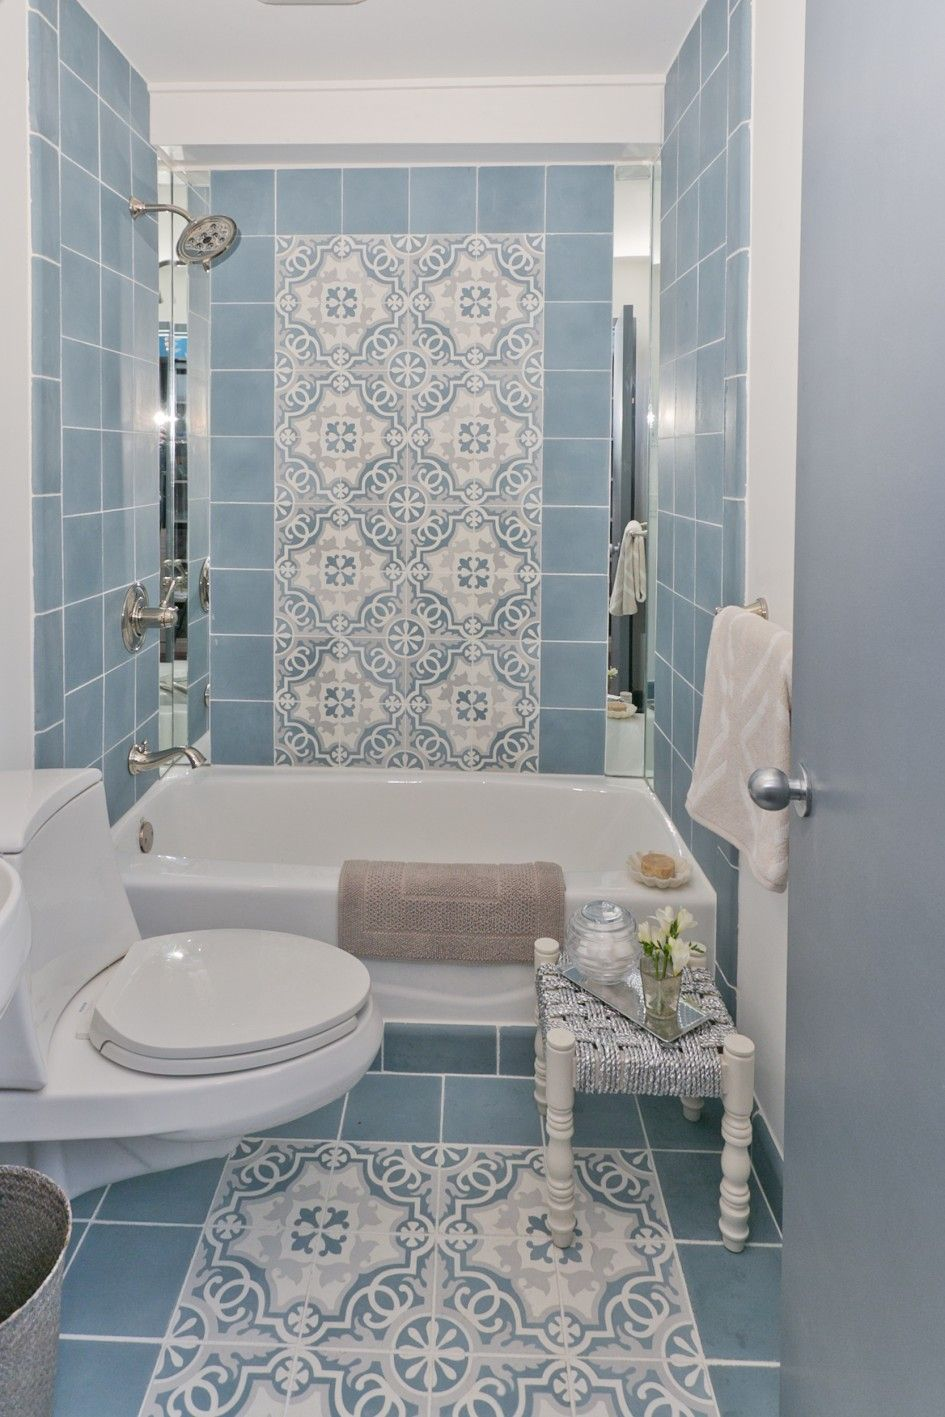 Beautiful Minimalist Blue Tile Pattern Bathroom Decor